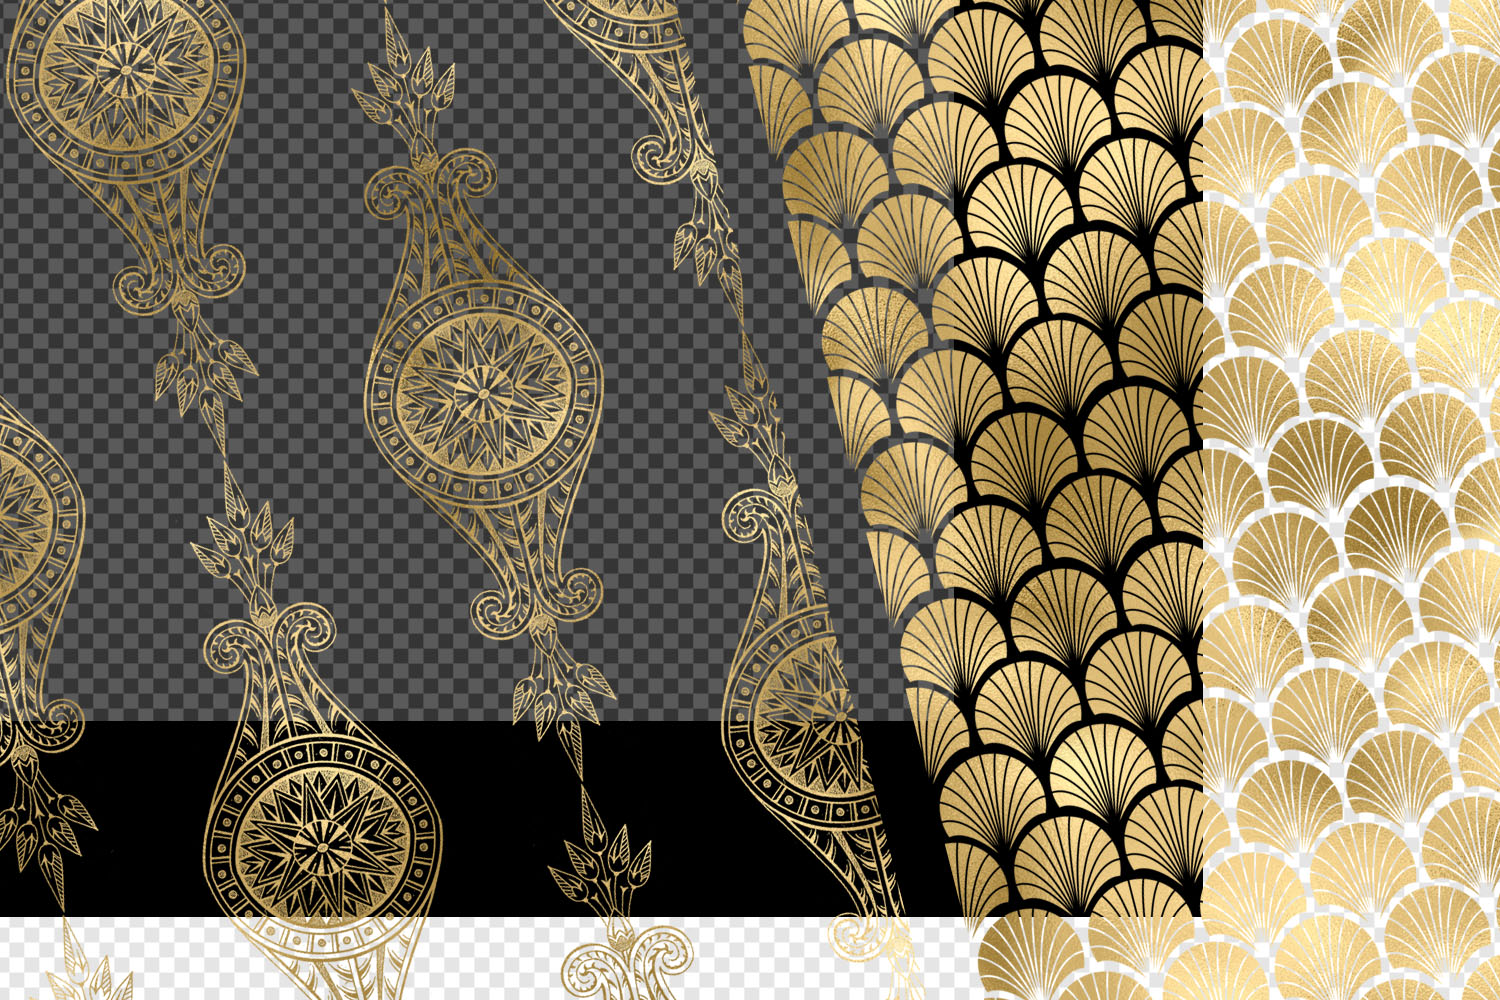 Gold Art Deco Pattern Overlays example image 4